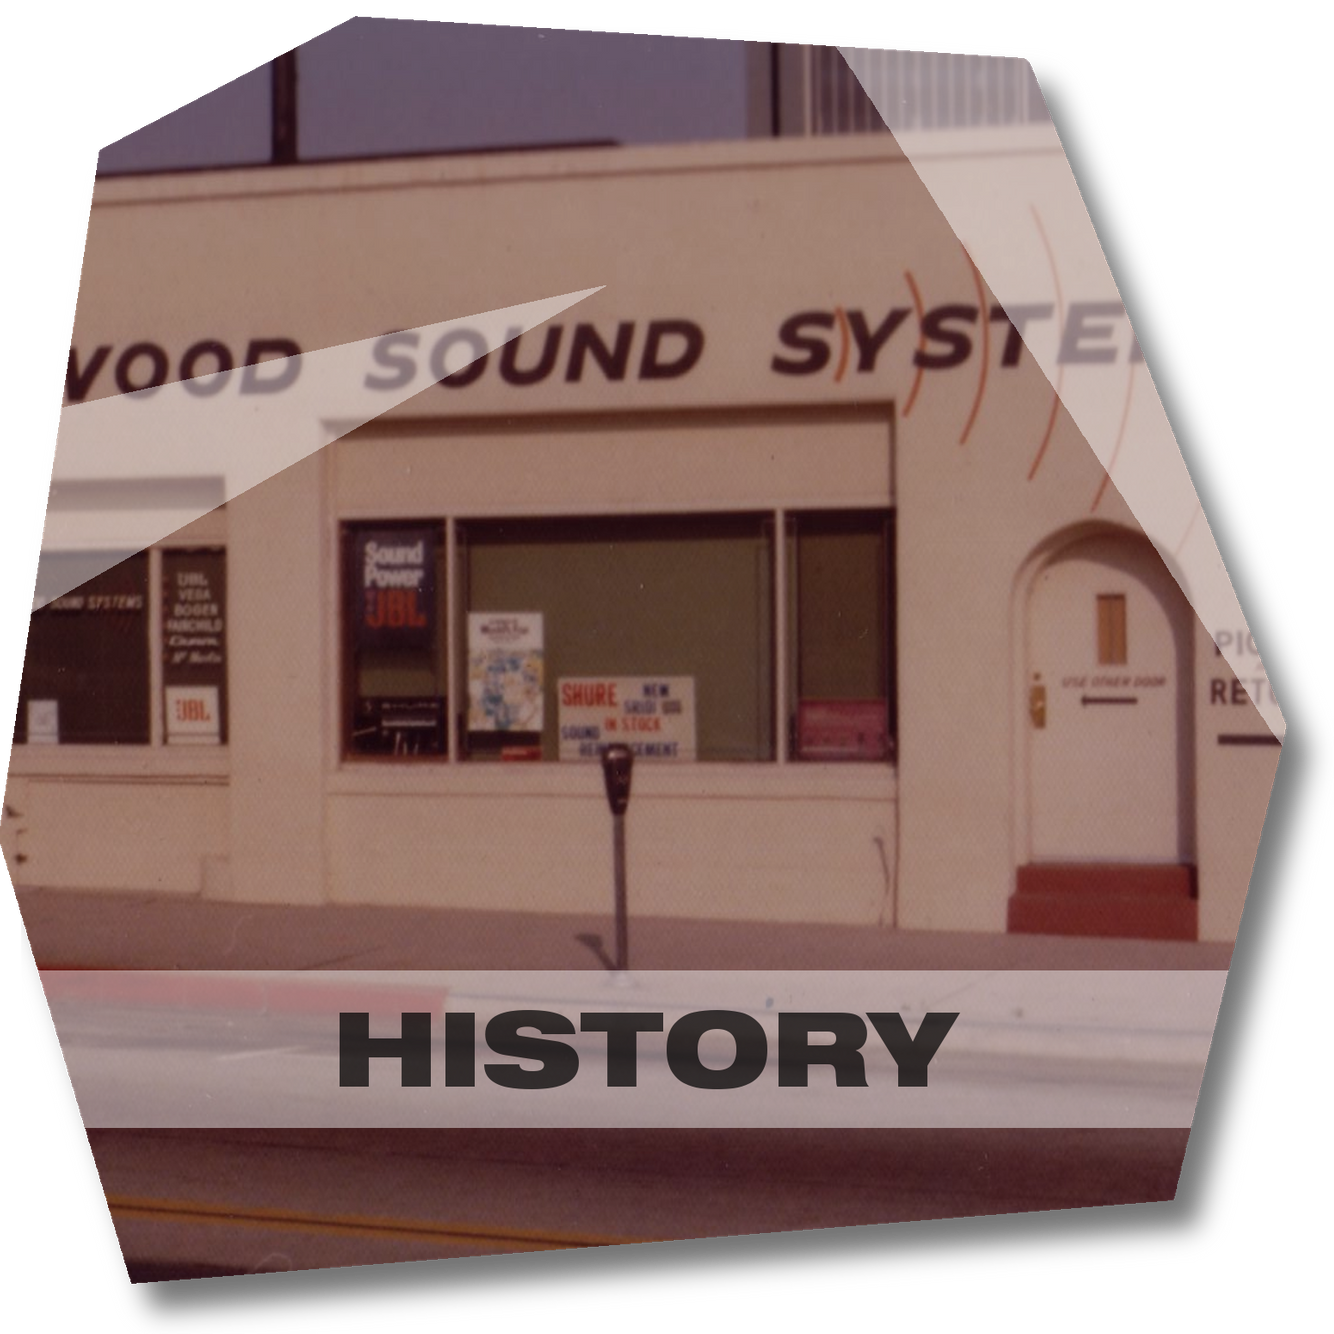 Hollywood Sound Systems history